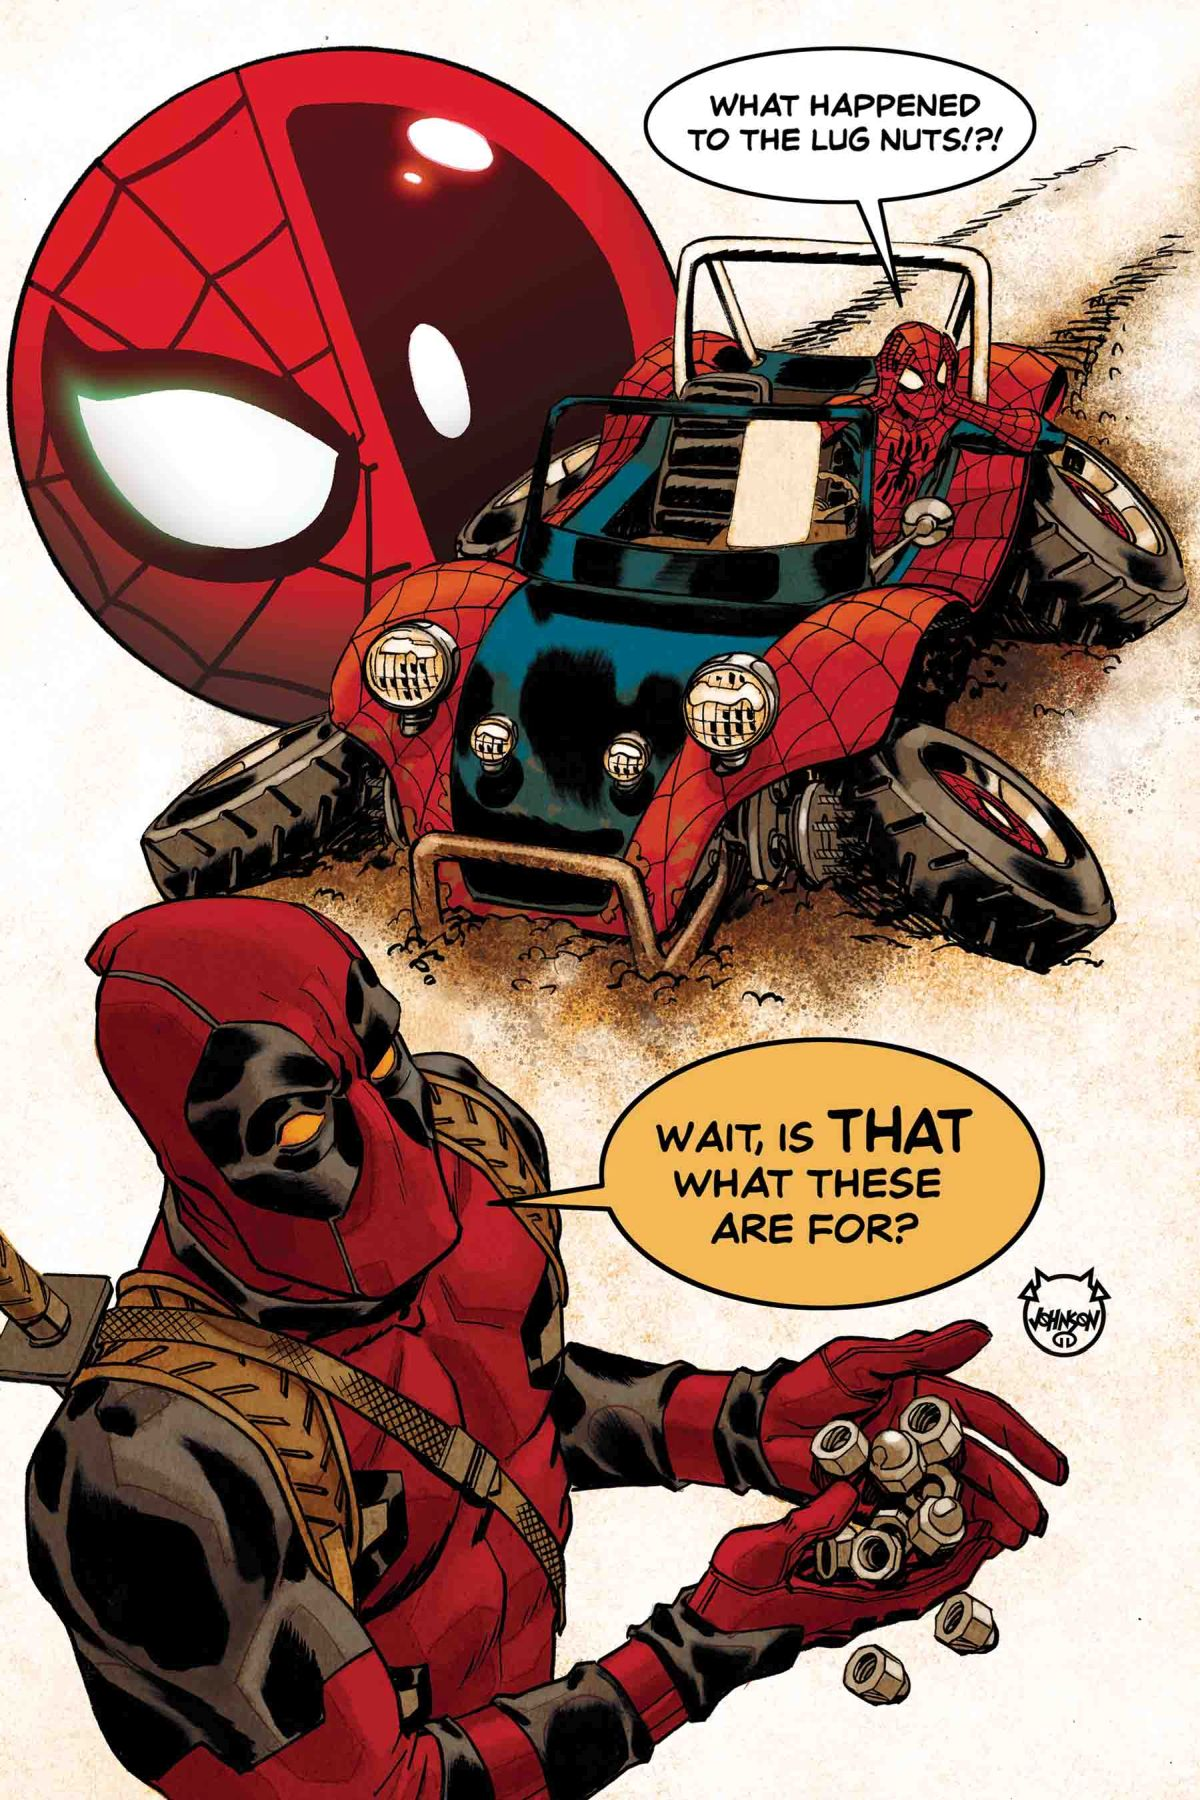 SPIDER-MAN/DEADPOOL #41 & #42